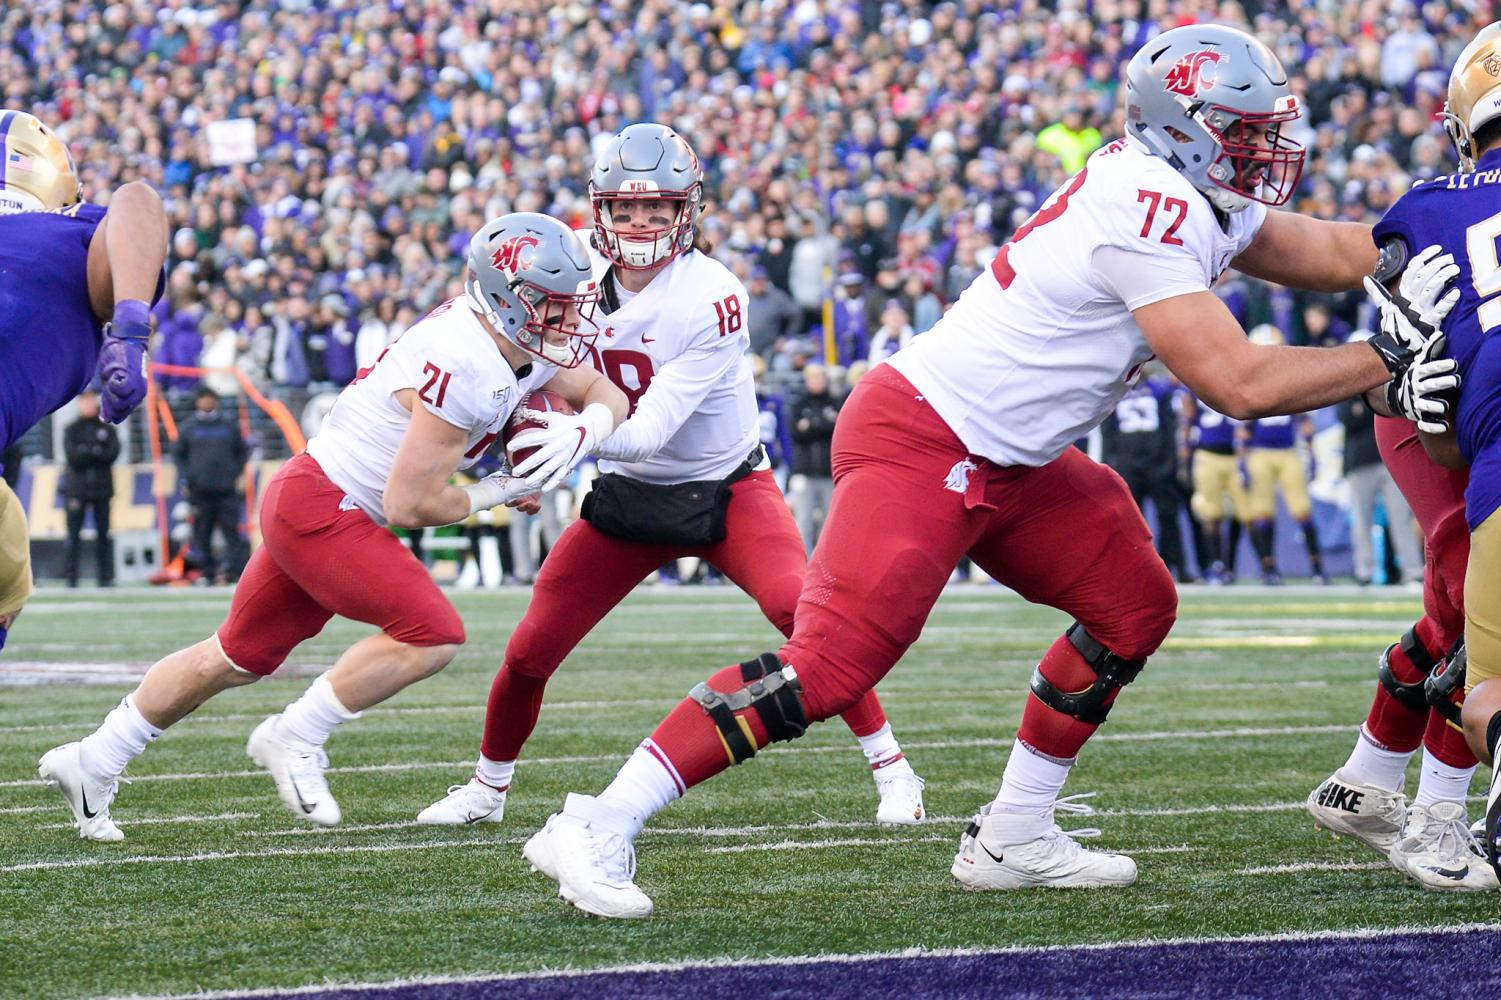 Senior quarterback Anthony Gordon hands the ball off to Sophomore running back Max Borghi who scores the first touchdown of the Apple Cup Friday afternoon at Husky Stadium.